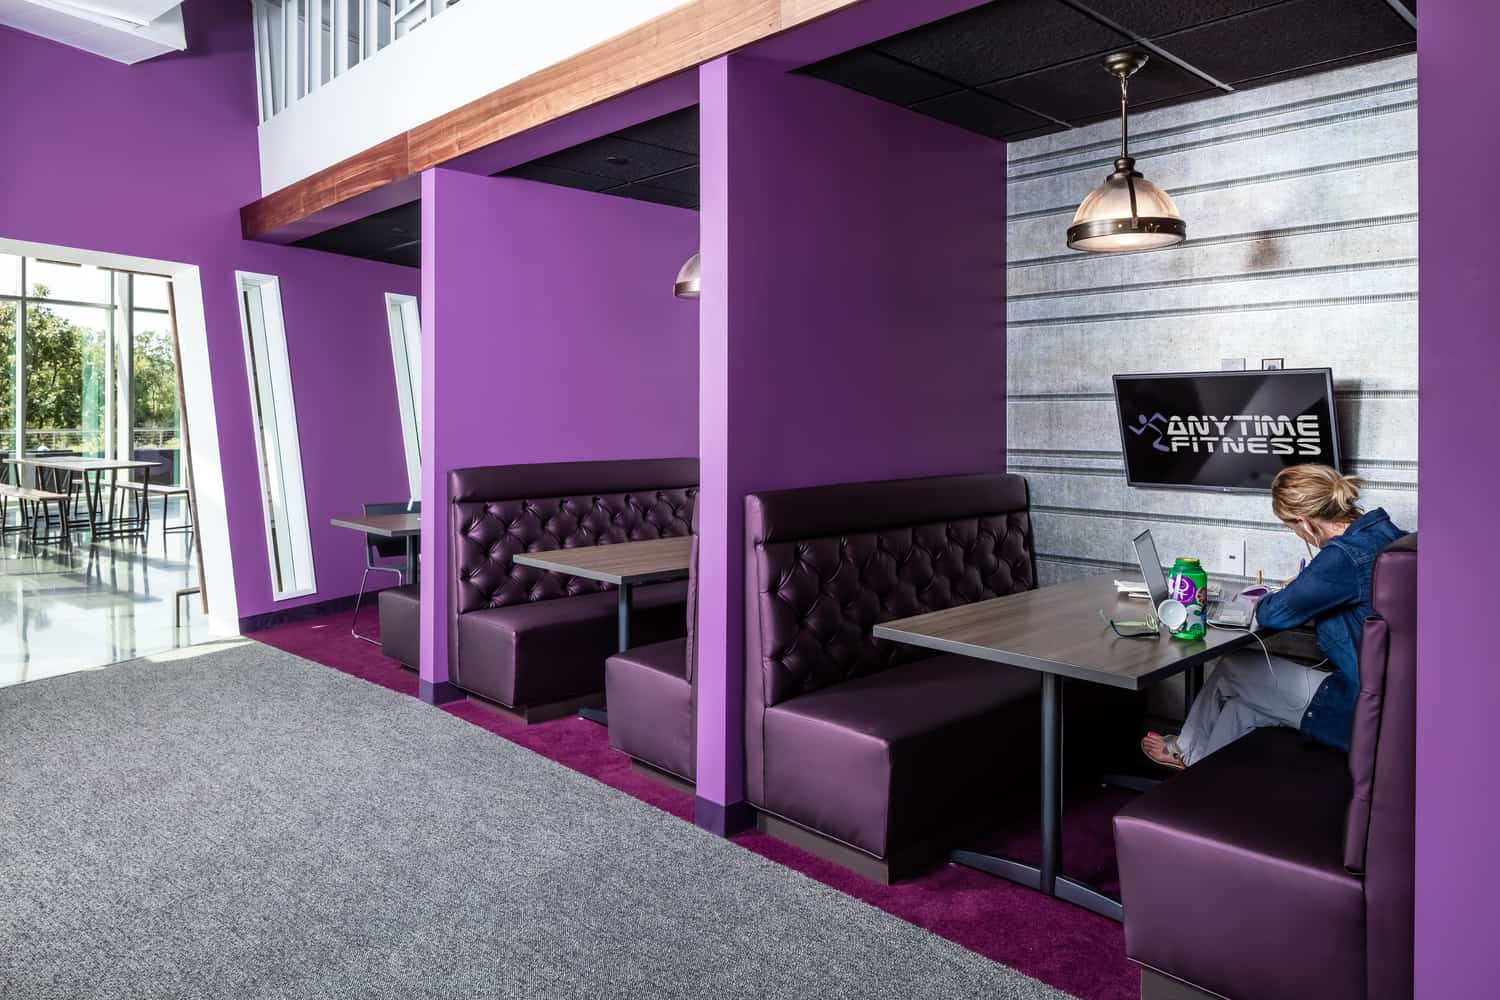 Anytime Fitness New Corporate Headquarters